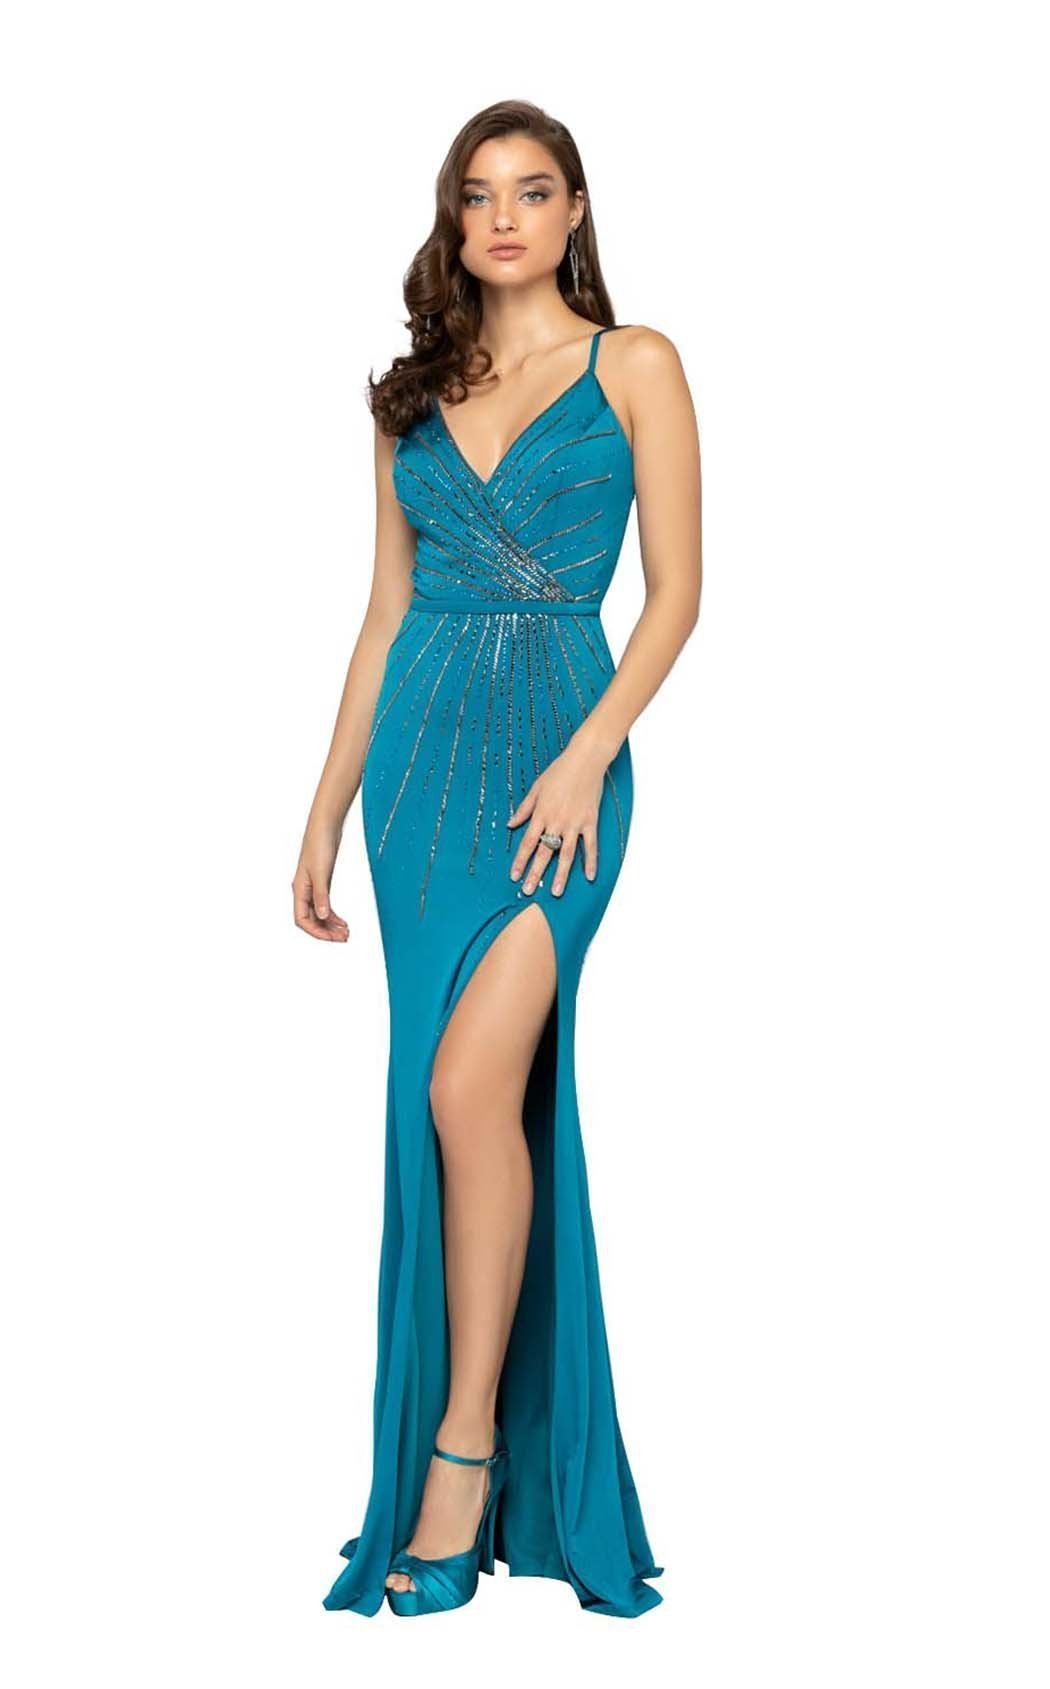 Terani Couture - Beaded Plunging V-neck Trumpet Dress 1912P8228SC